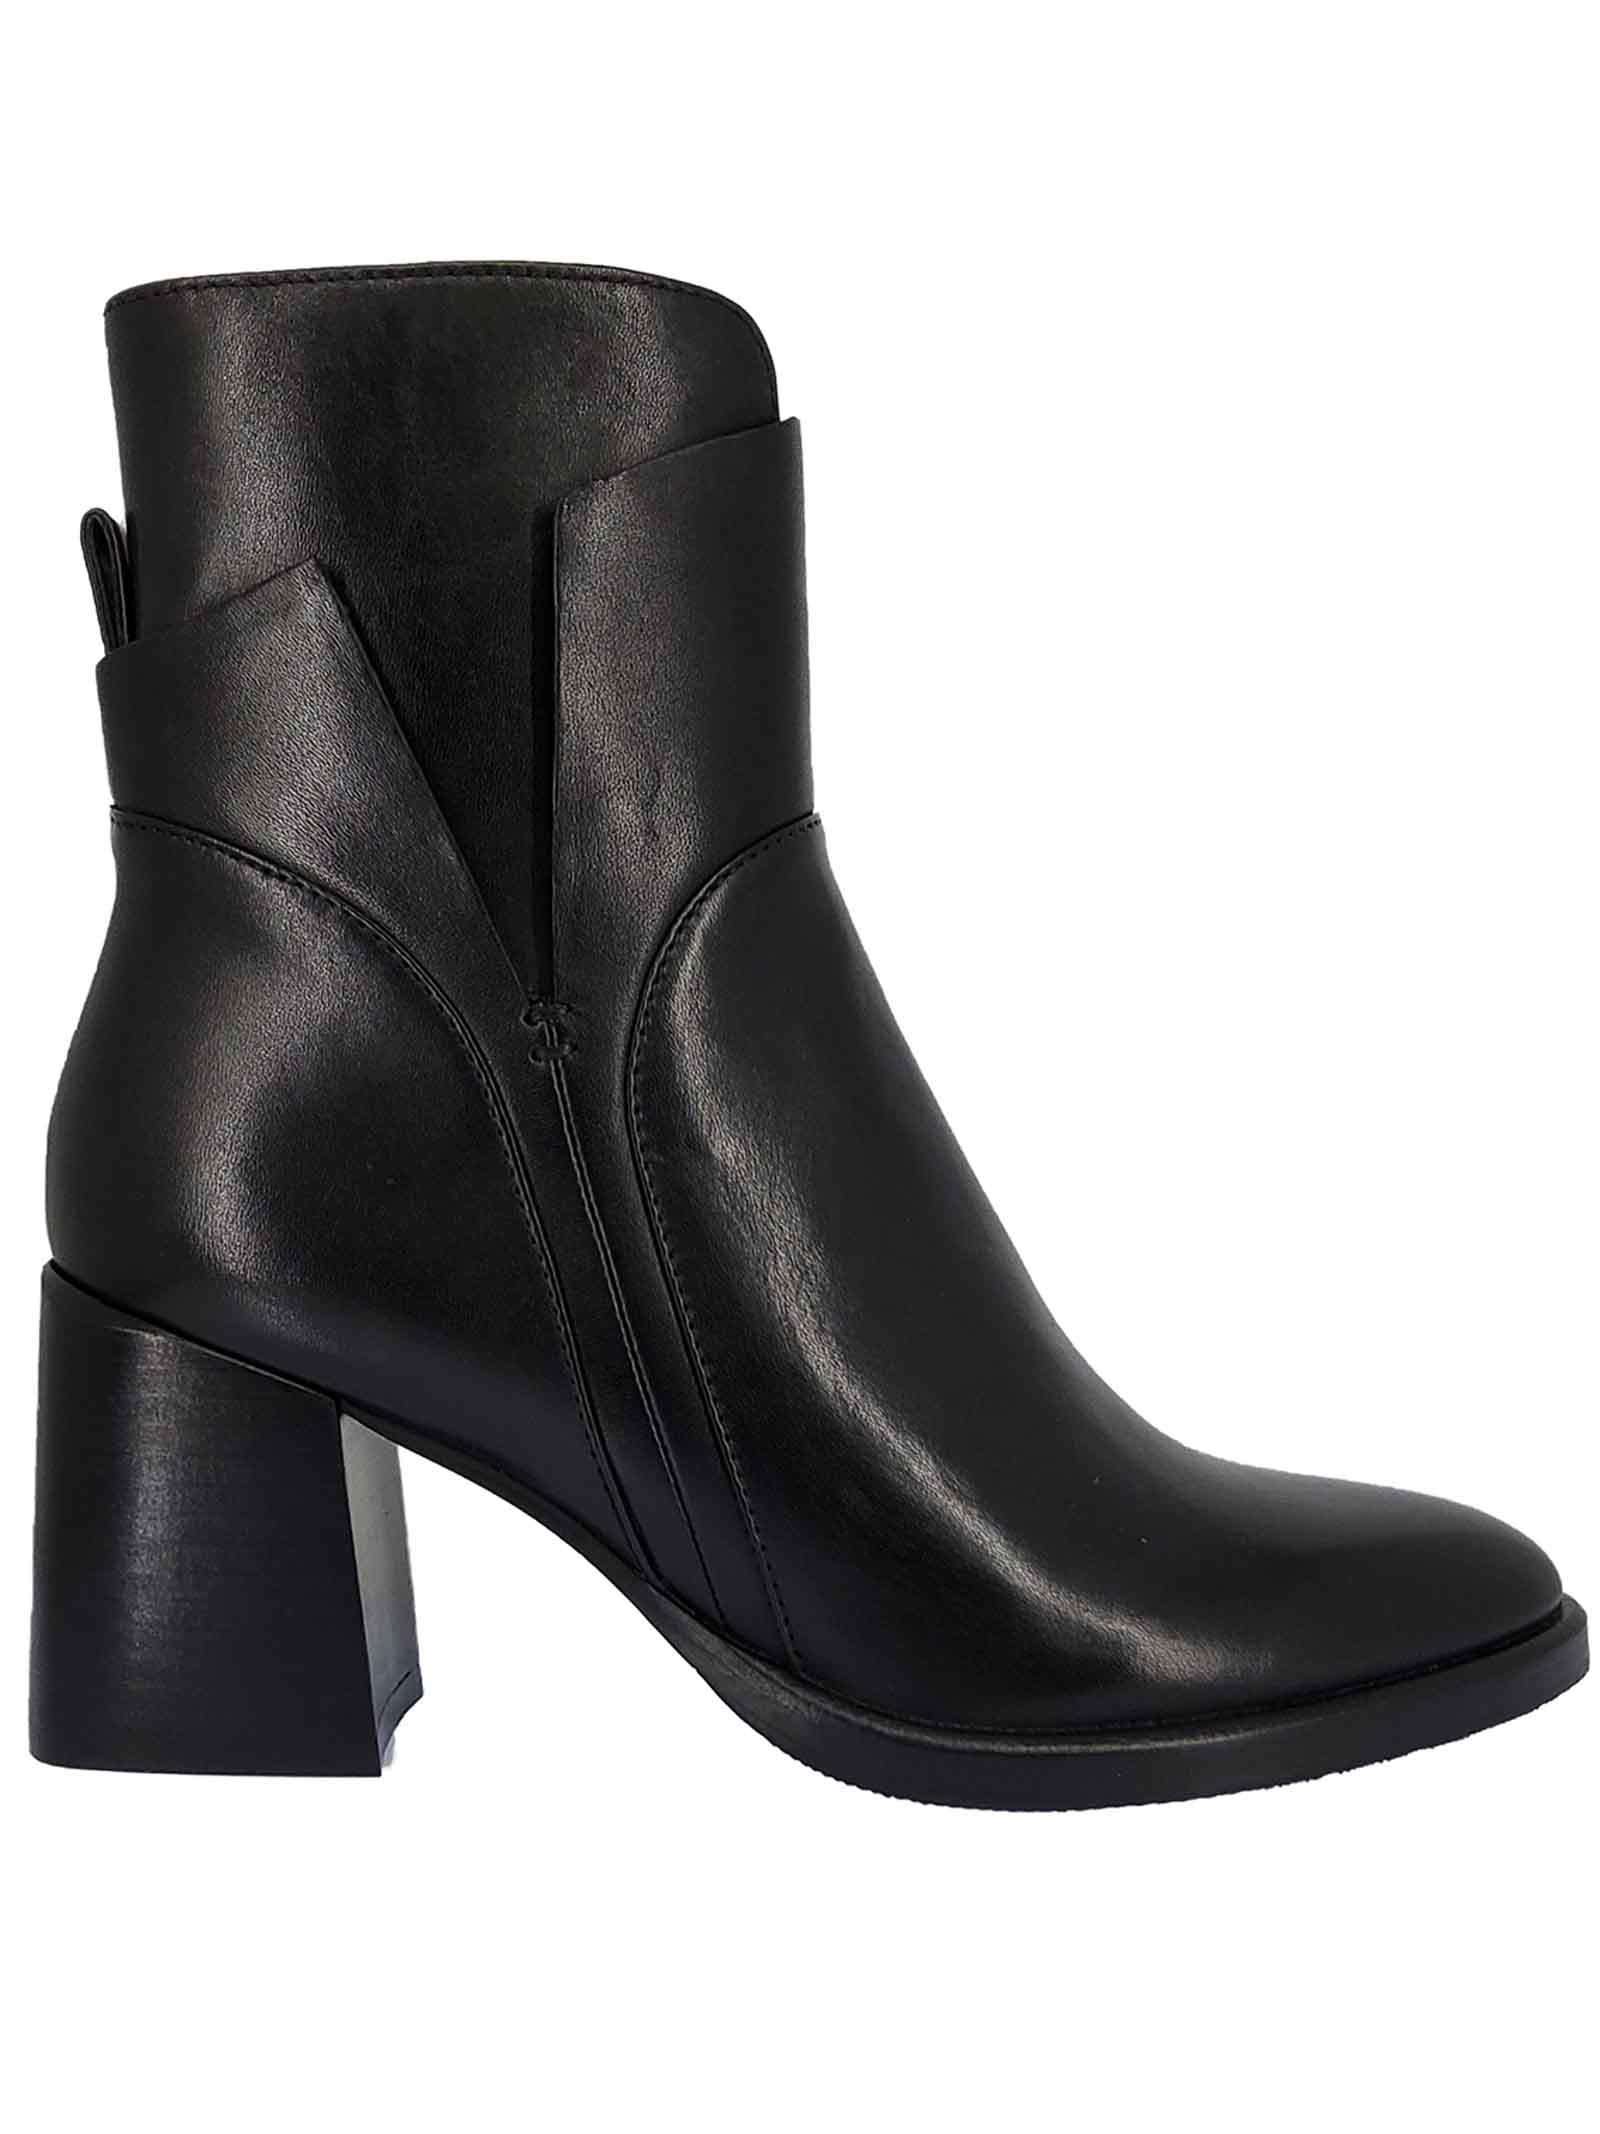 Women's Shoes Dali Vea Boots in Black Leather with Leather Heel and Side Zip Bruno Premi | Ankle Boots | BC1604X001